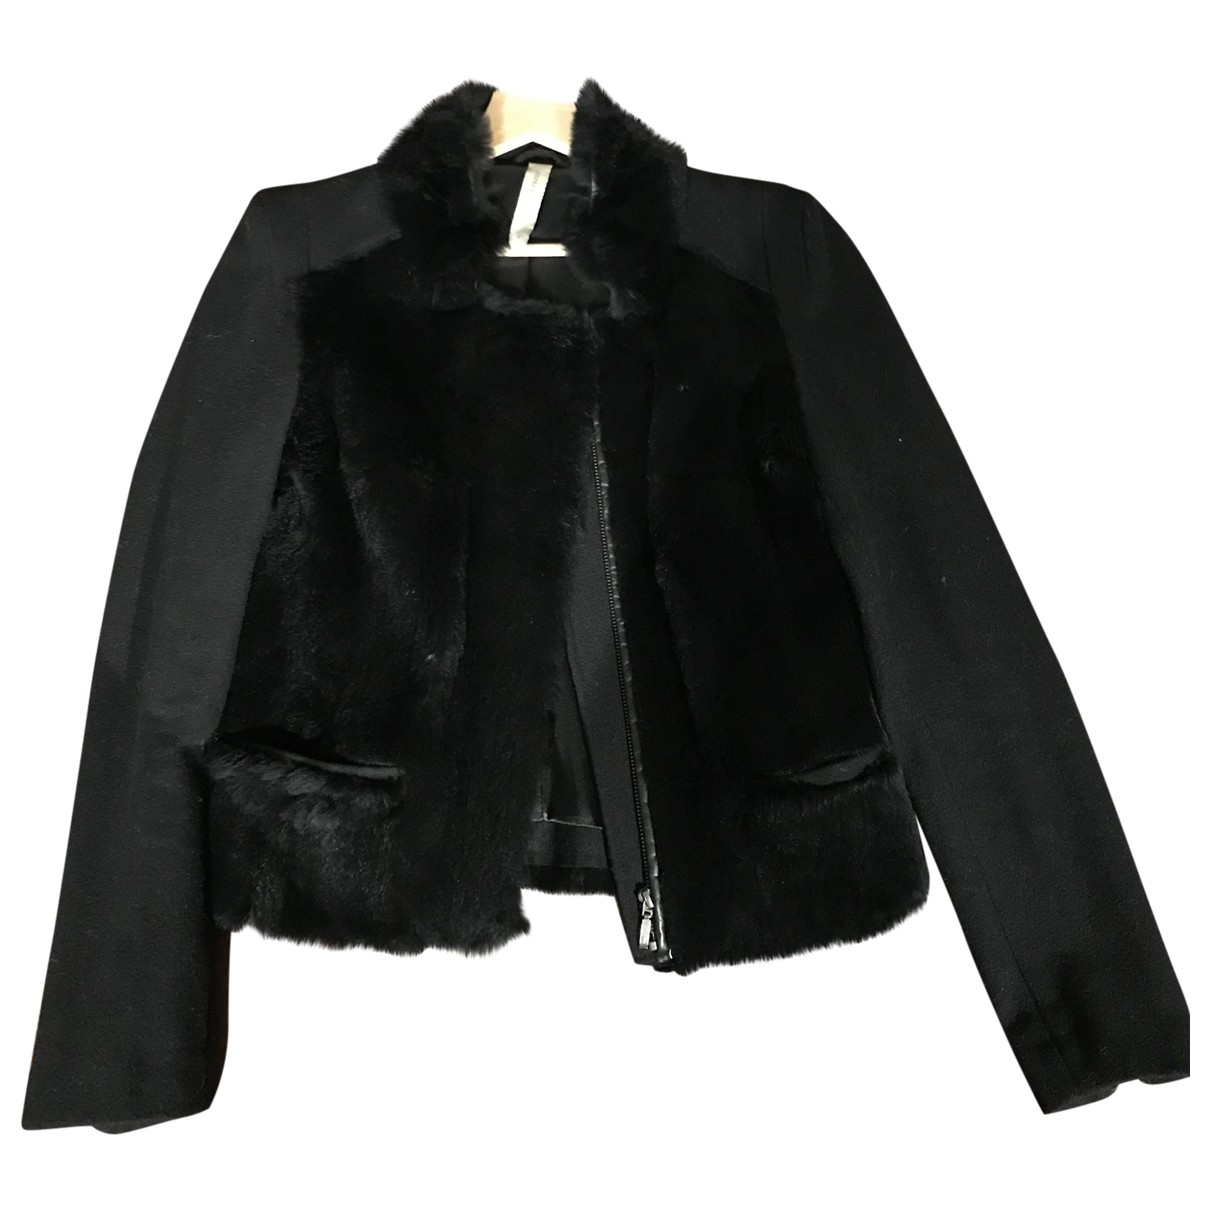 Stephanie Vaille \N Black Wool jacket for Women 38 FR